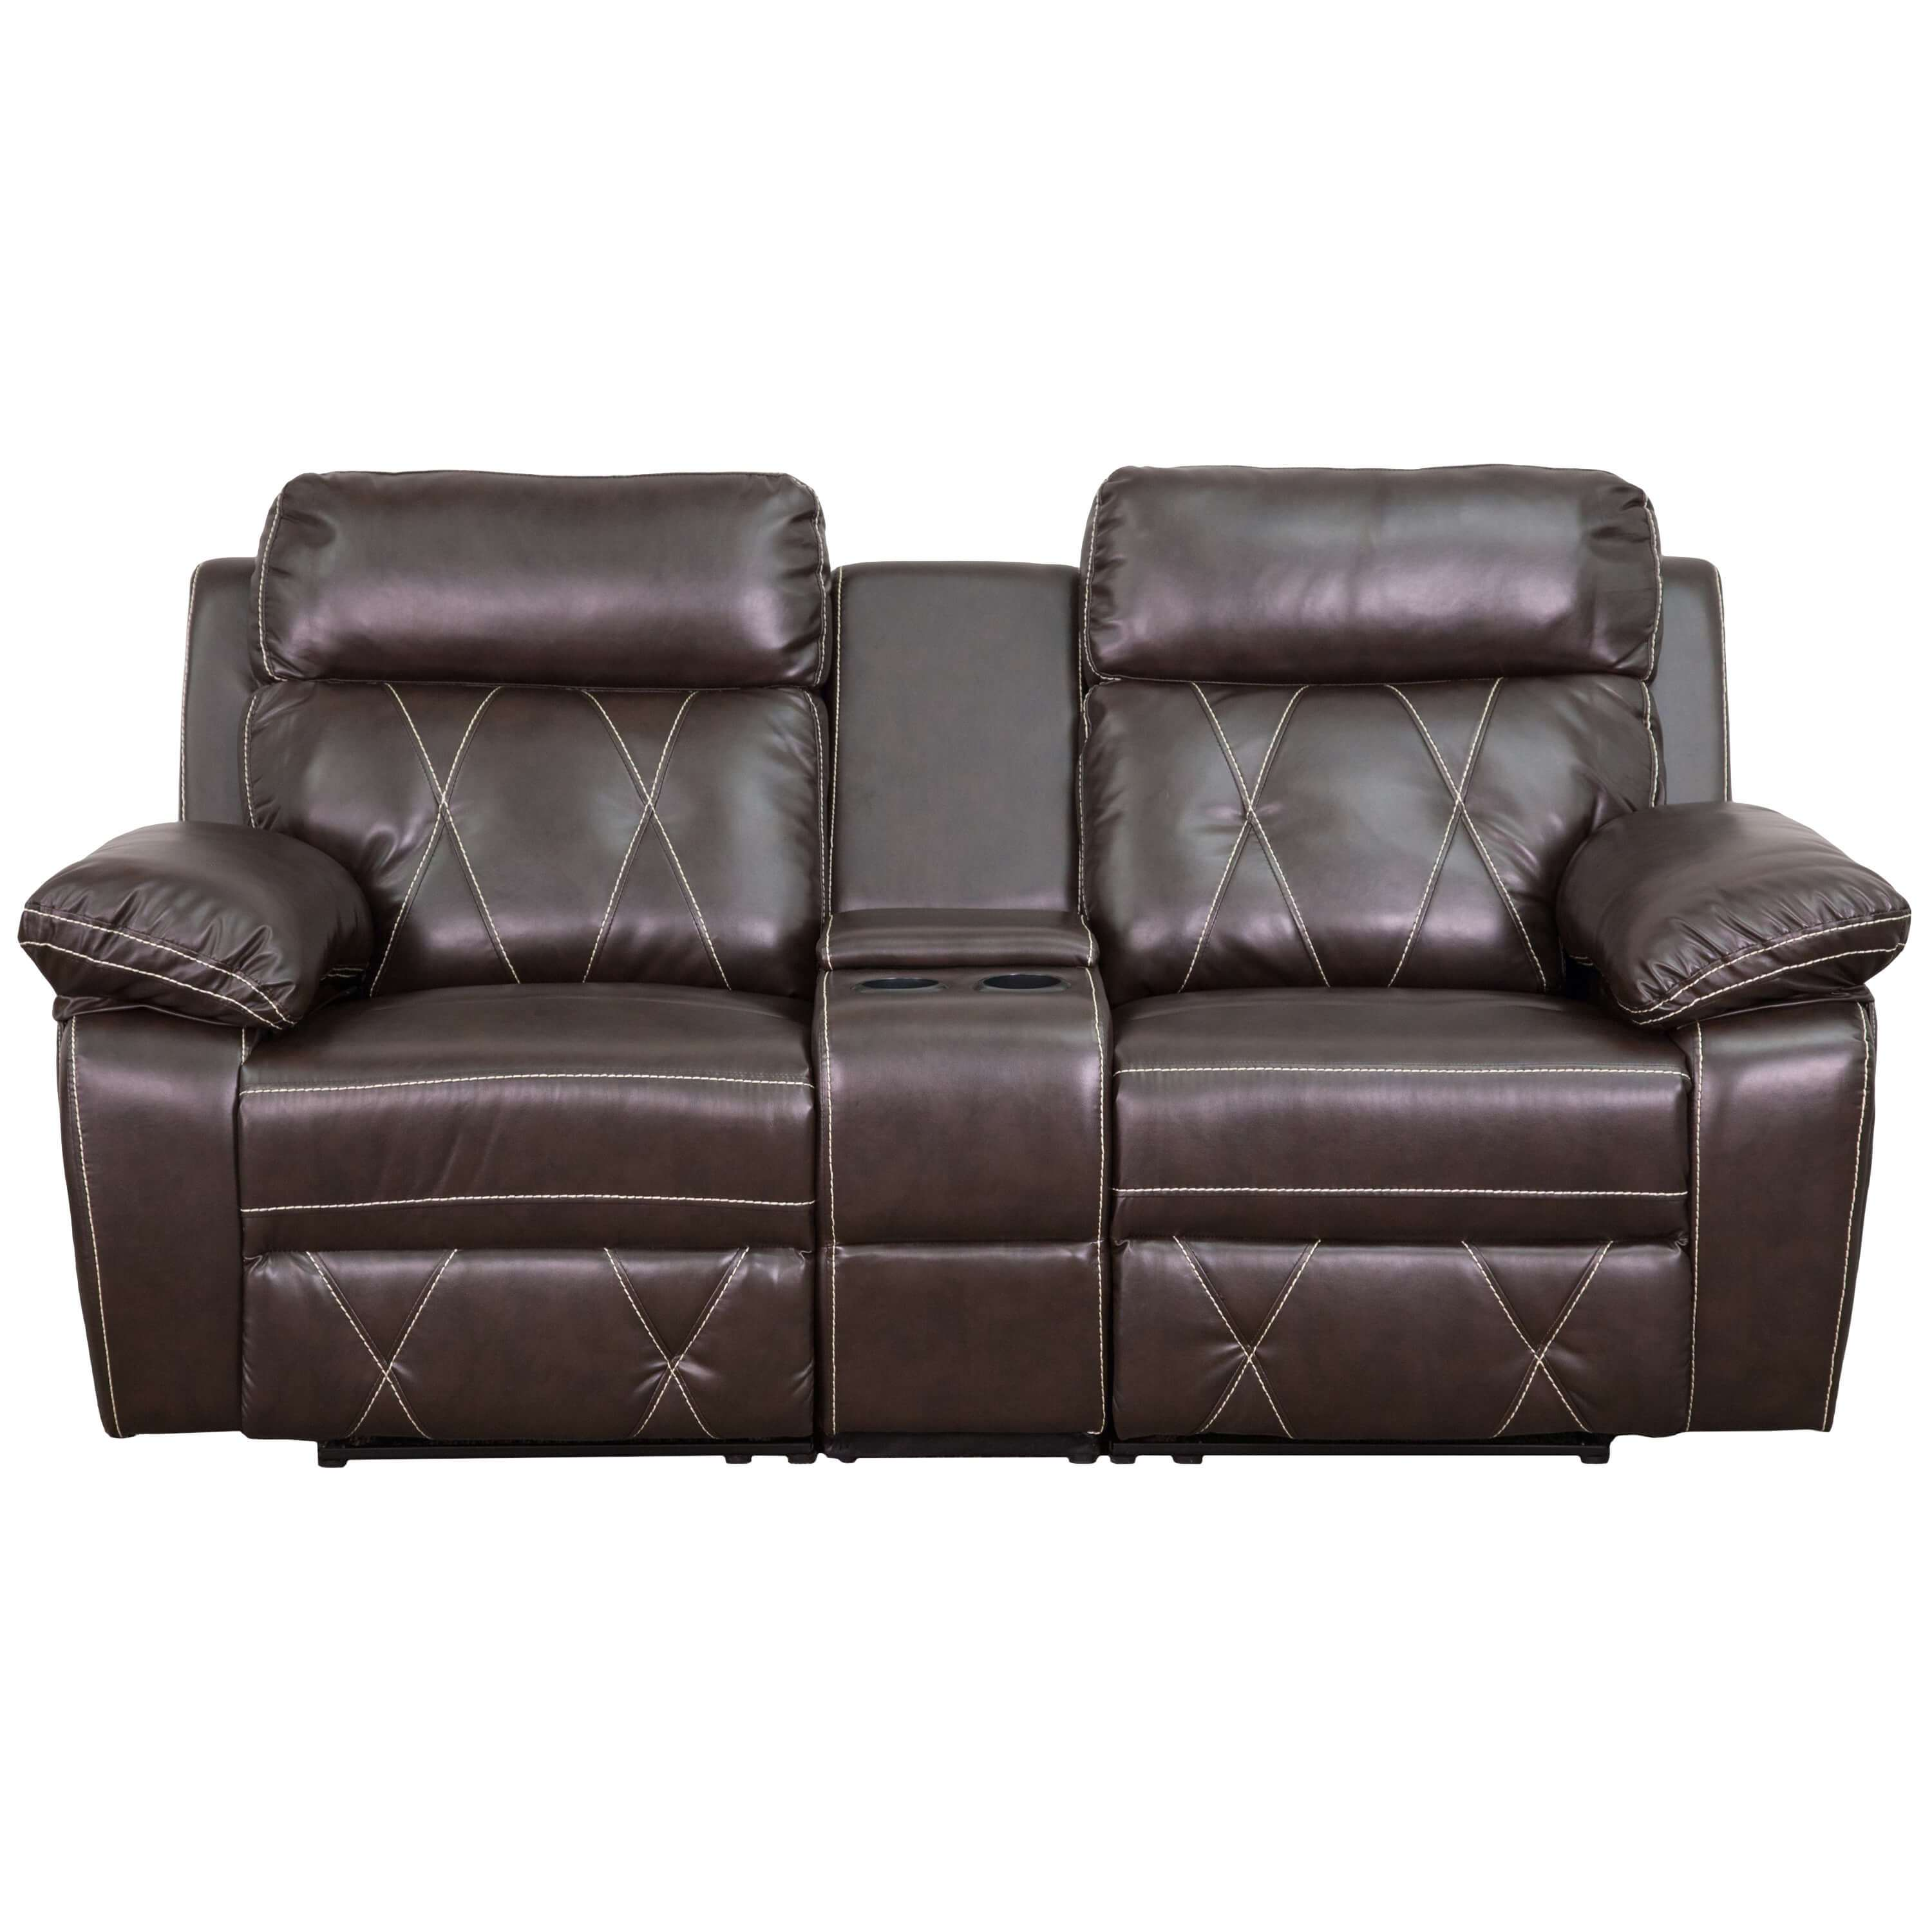 Home theater recliners CUB BT 70530 2 BRN GG FLA